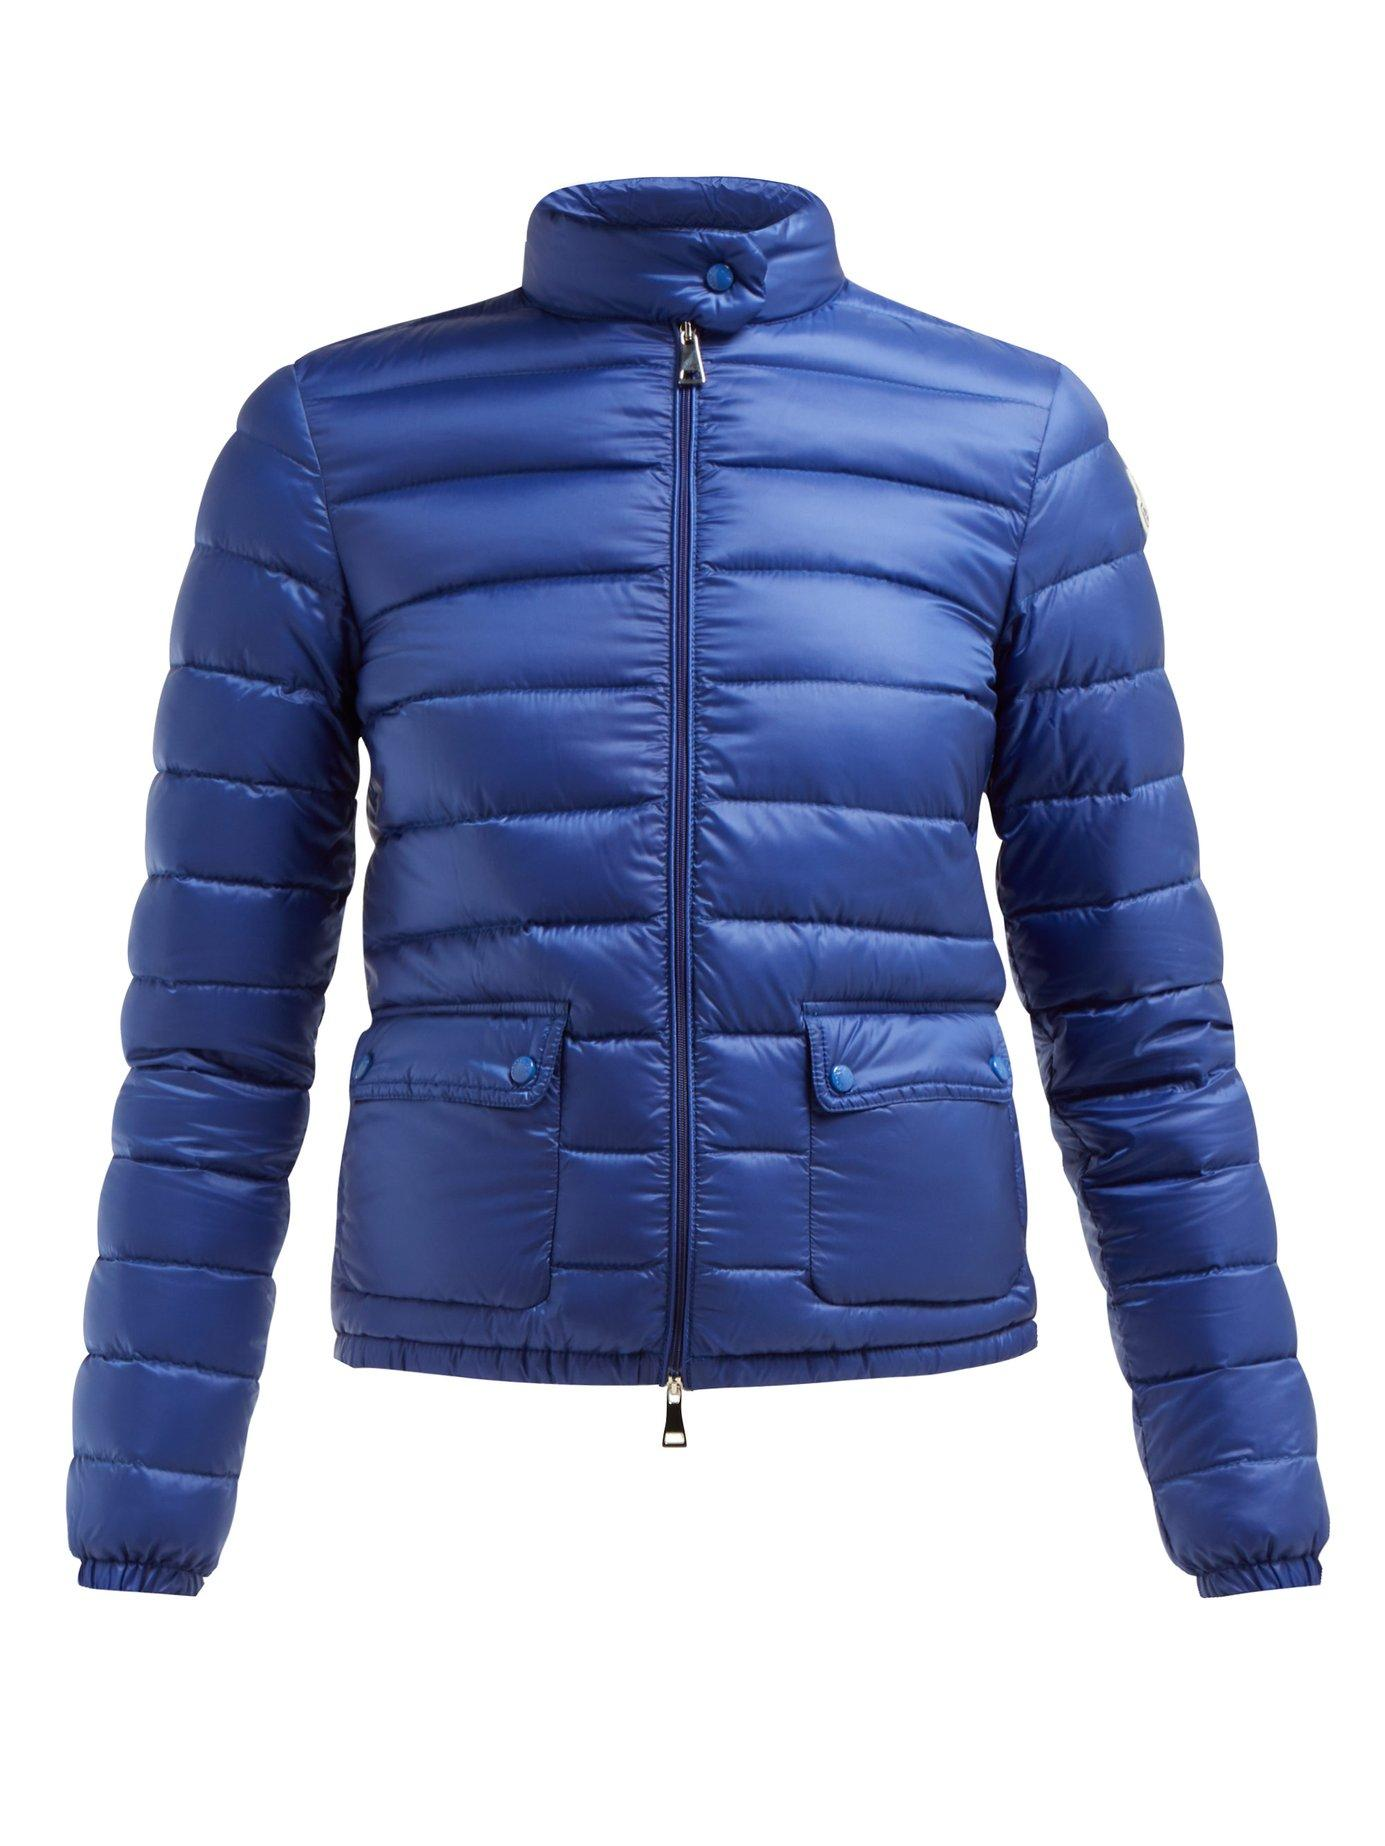 1d2854035ff1 Lyst - Moncler Lans Quilted Down Filled Jacket in Blue